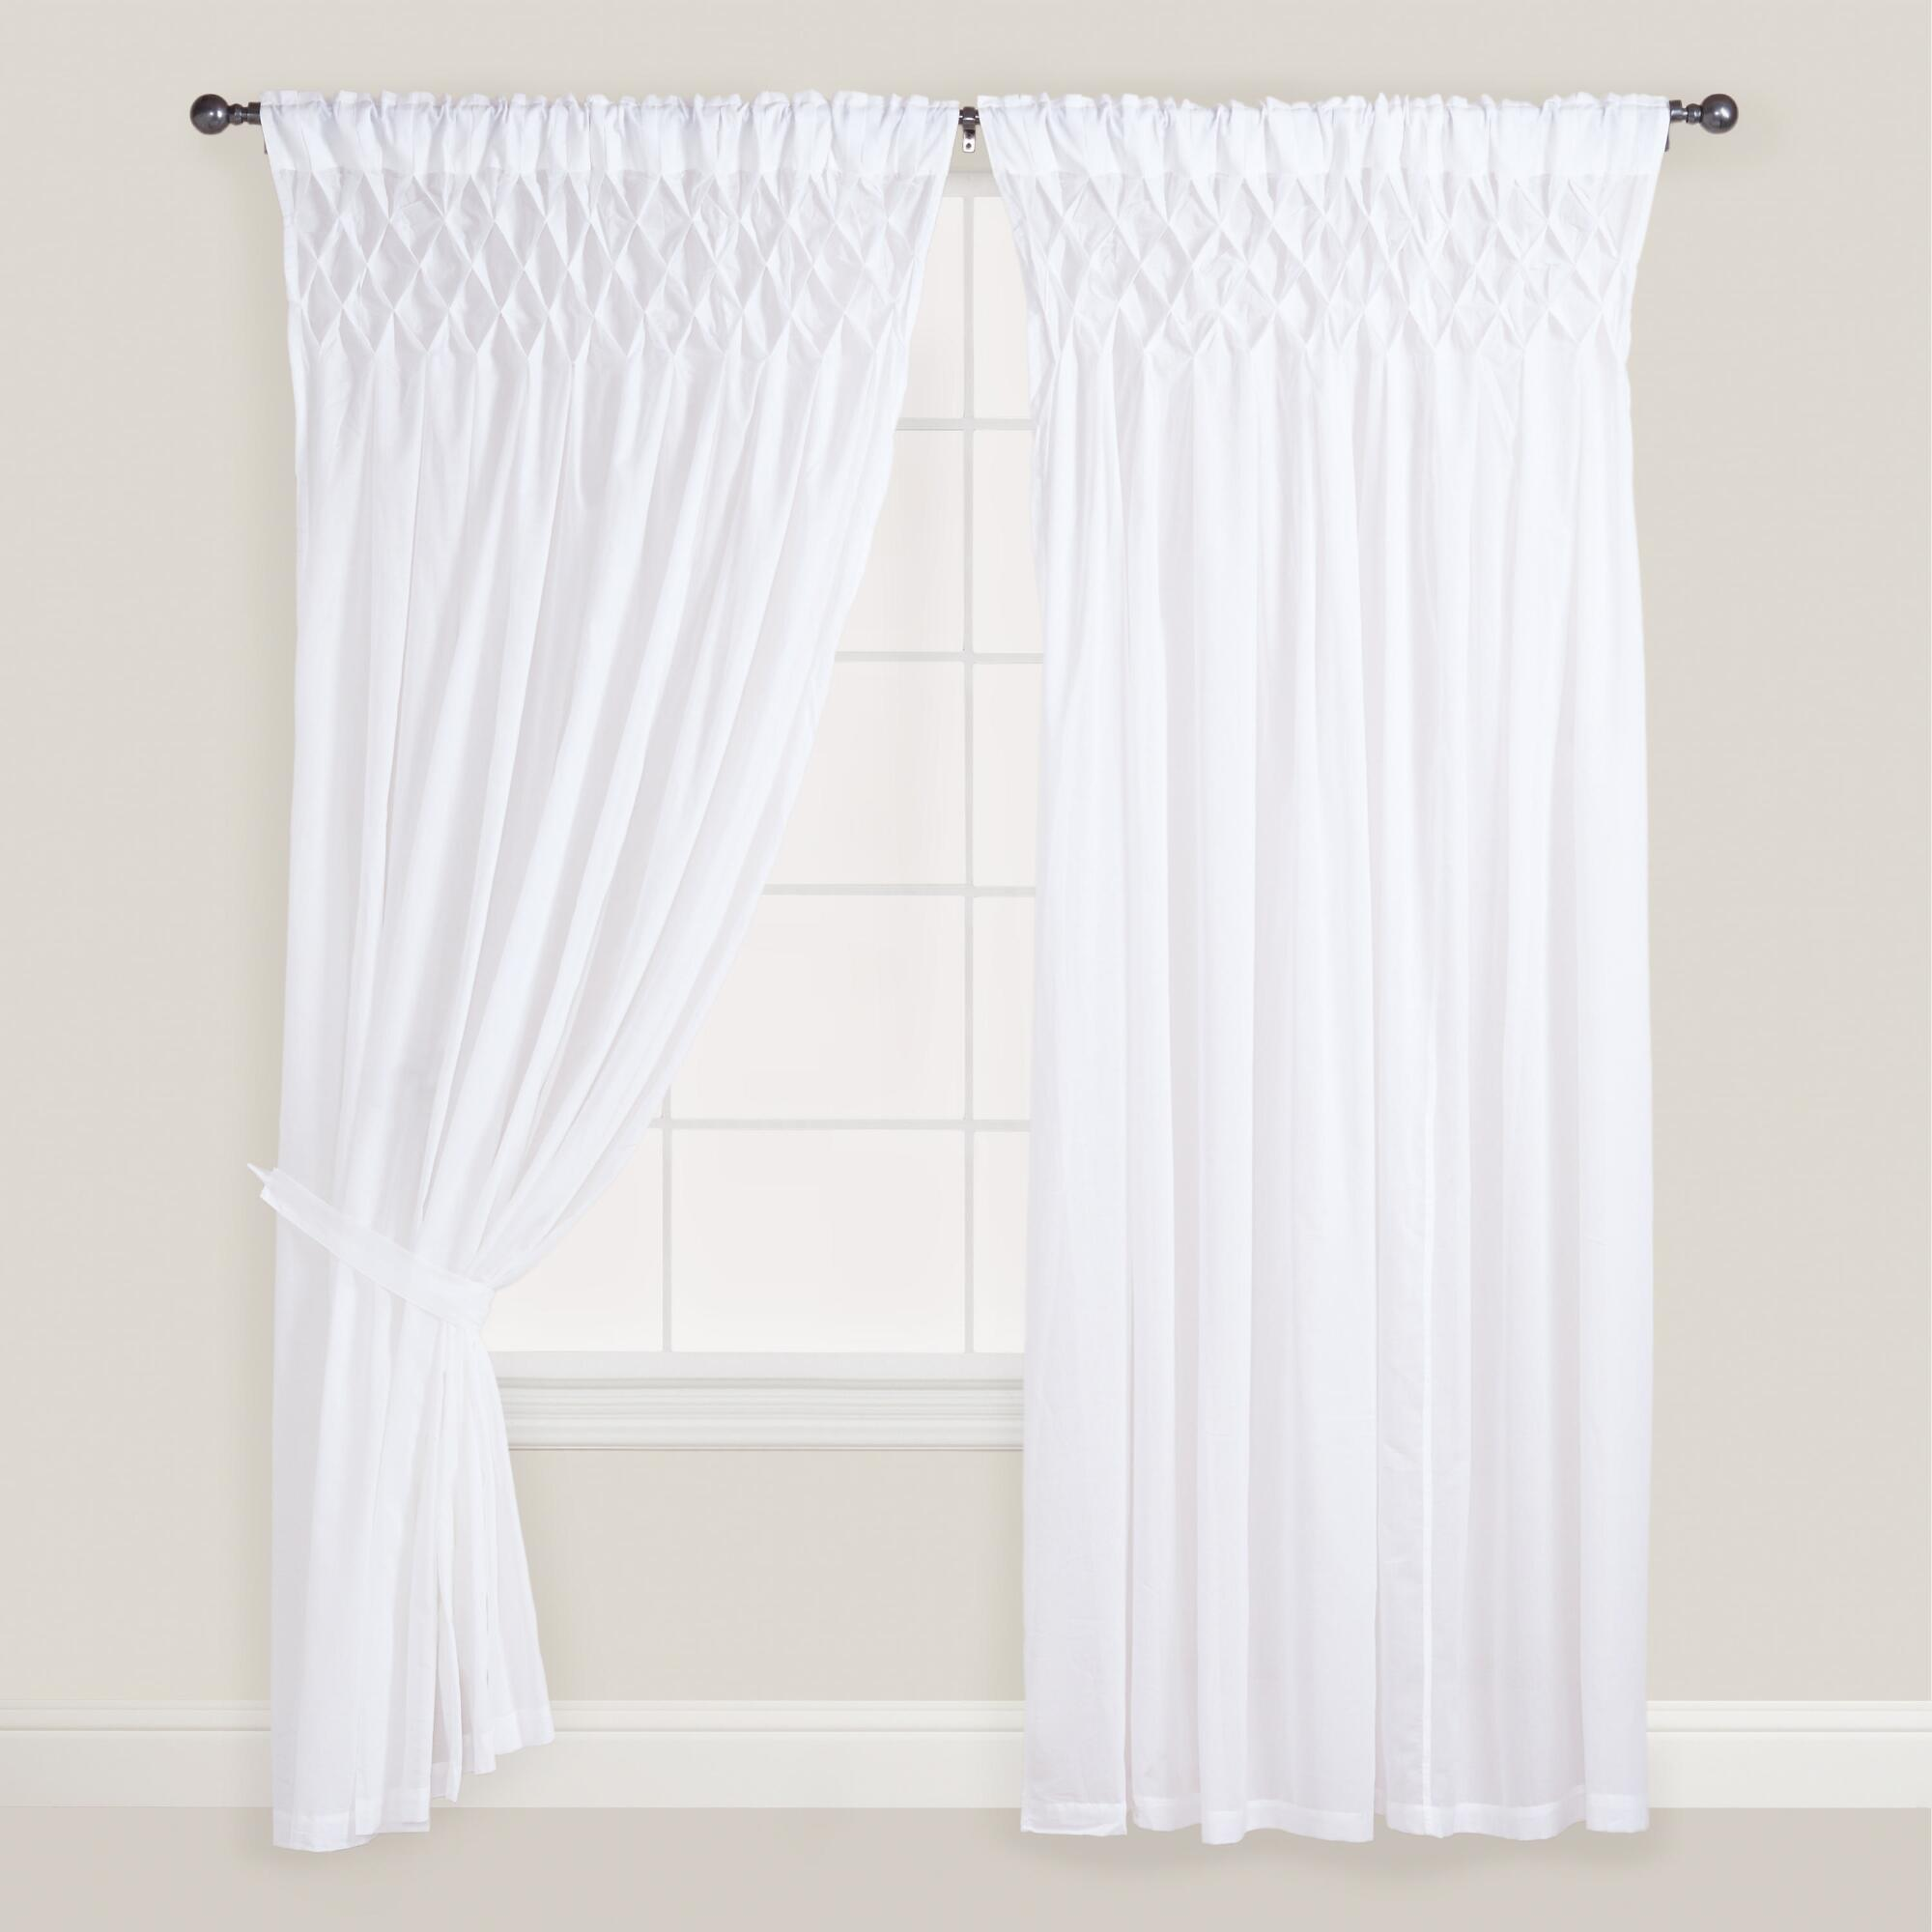 Decor Look Alikes | World Market White Smocked Top Curtains